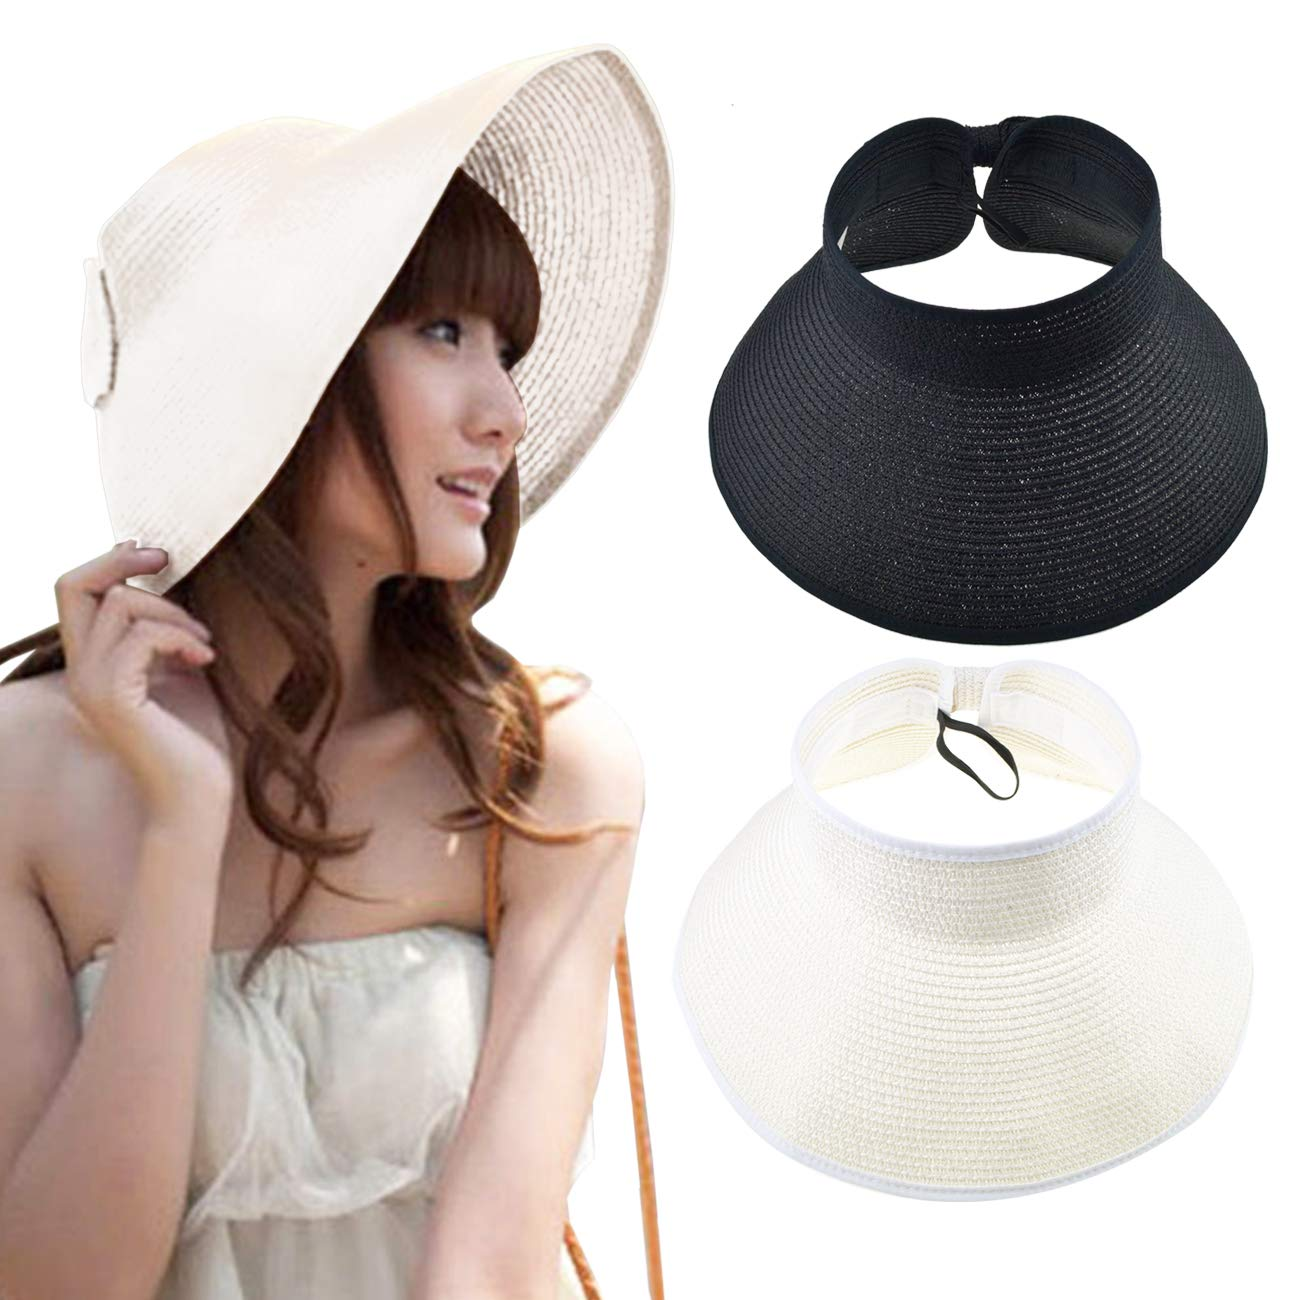 DRESHOW Sun Visor Hat Cap Adjustable Large Brim Straw Beach Hat UV Protection UPF 50+ for Women Summer Packable